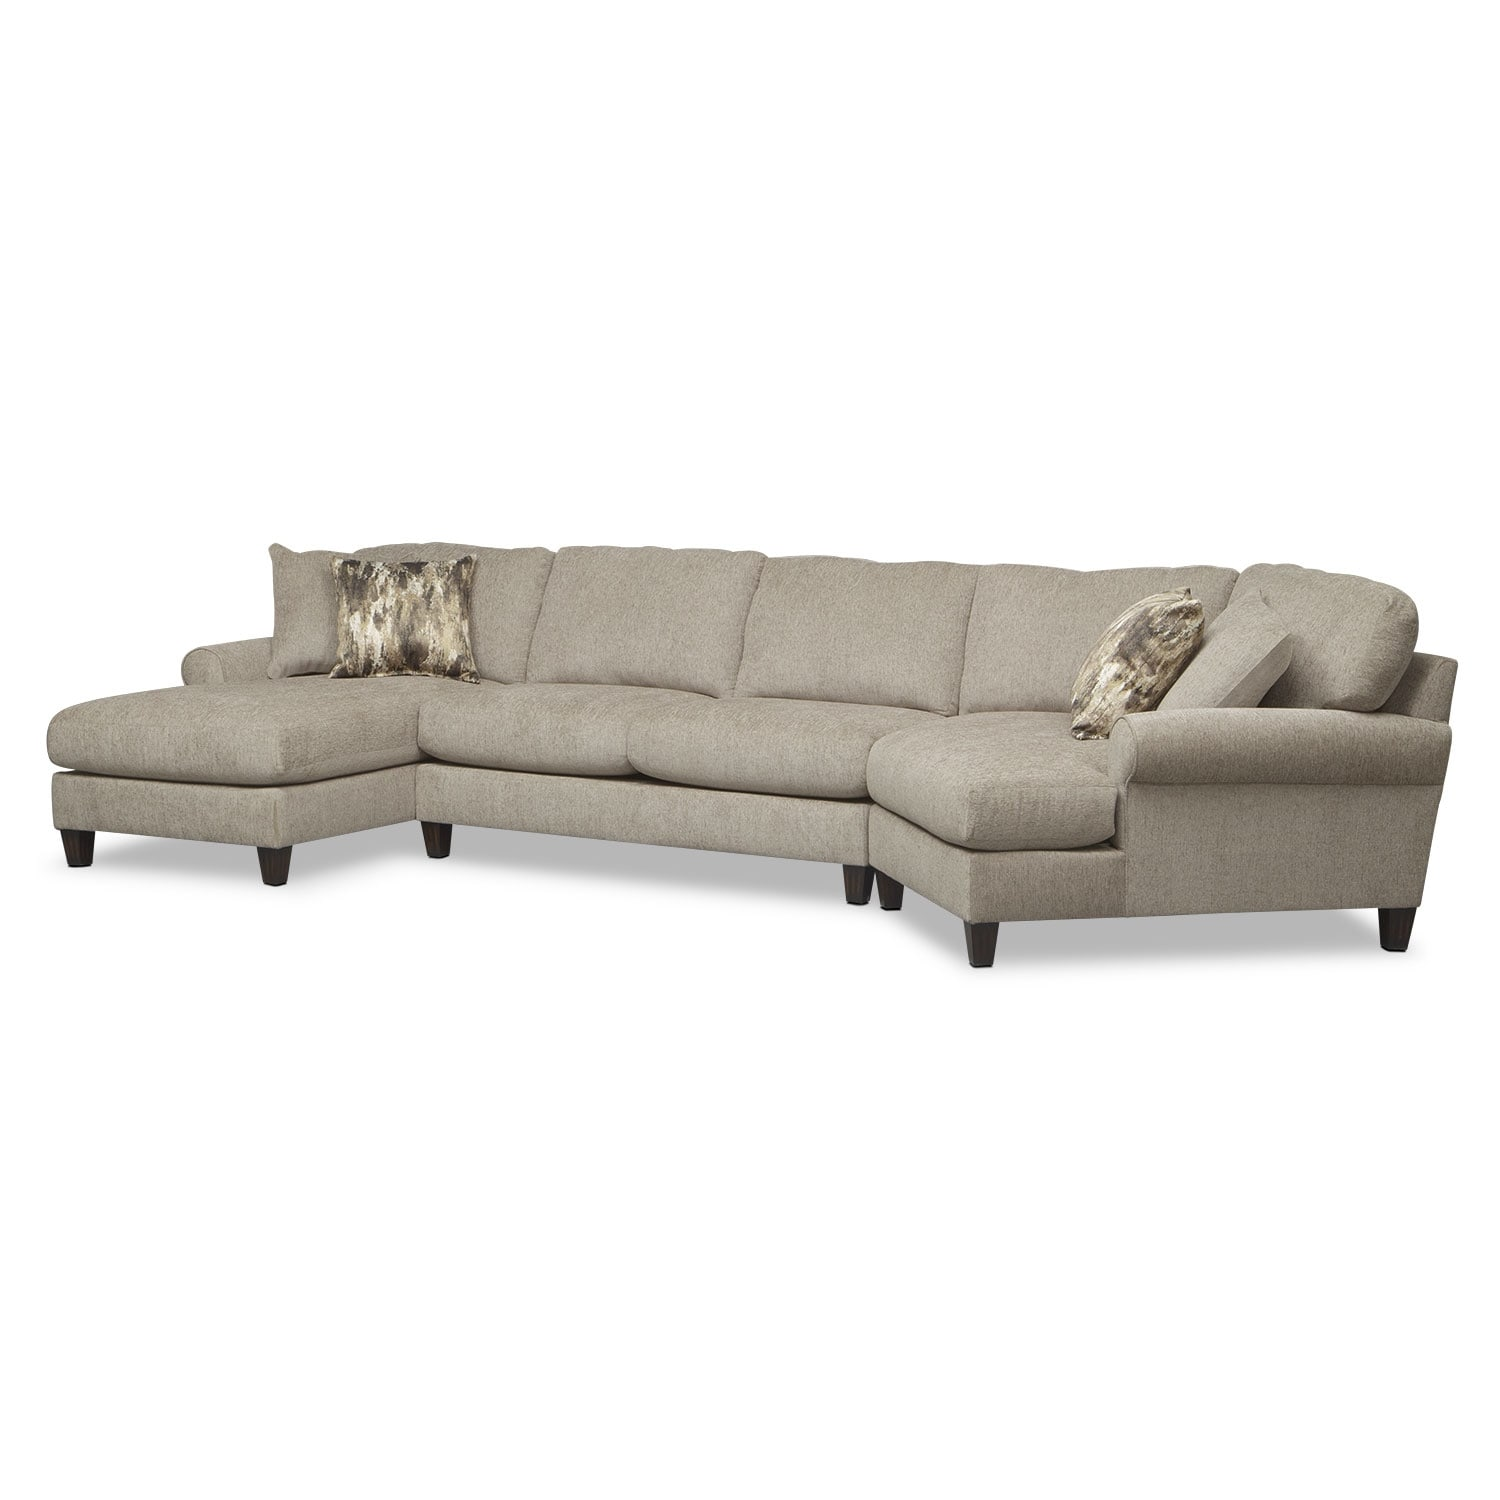 Karma 3Piece Sectional with RightFacing Cuddler and Left